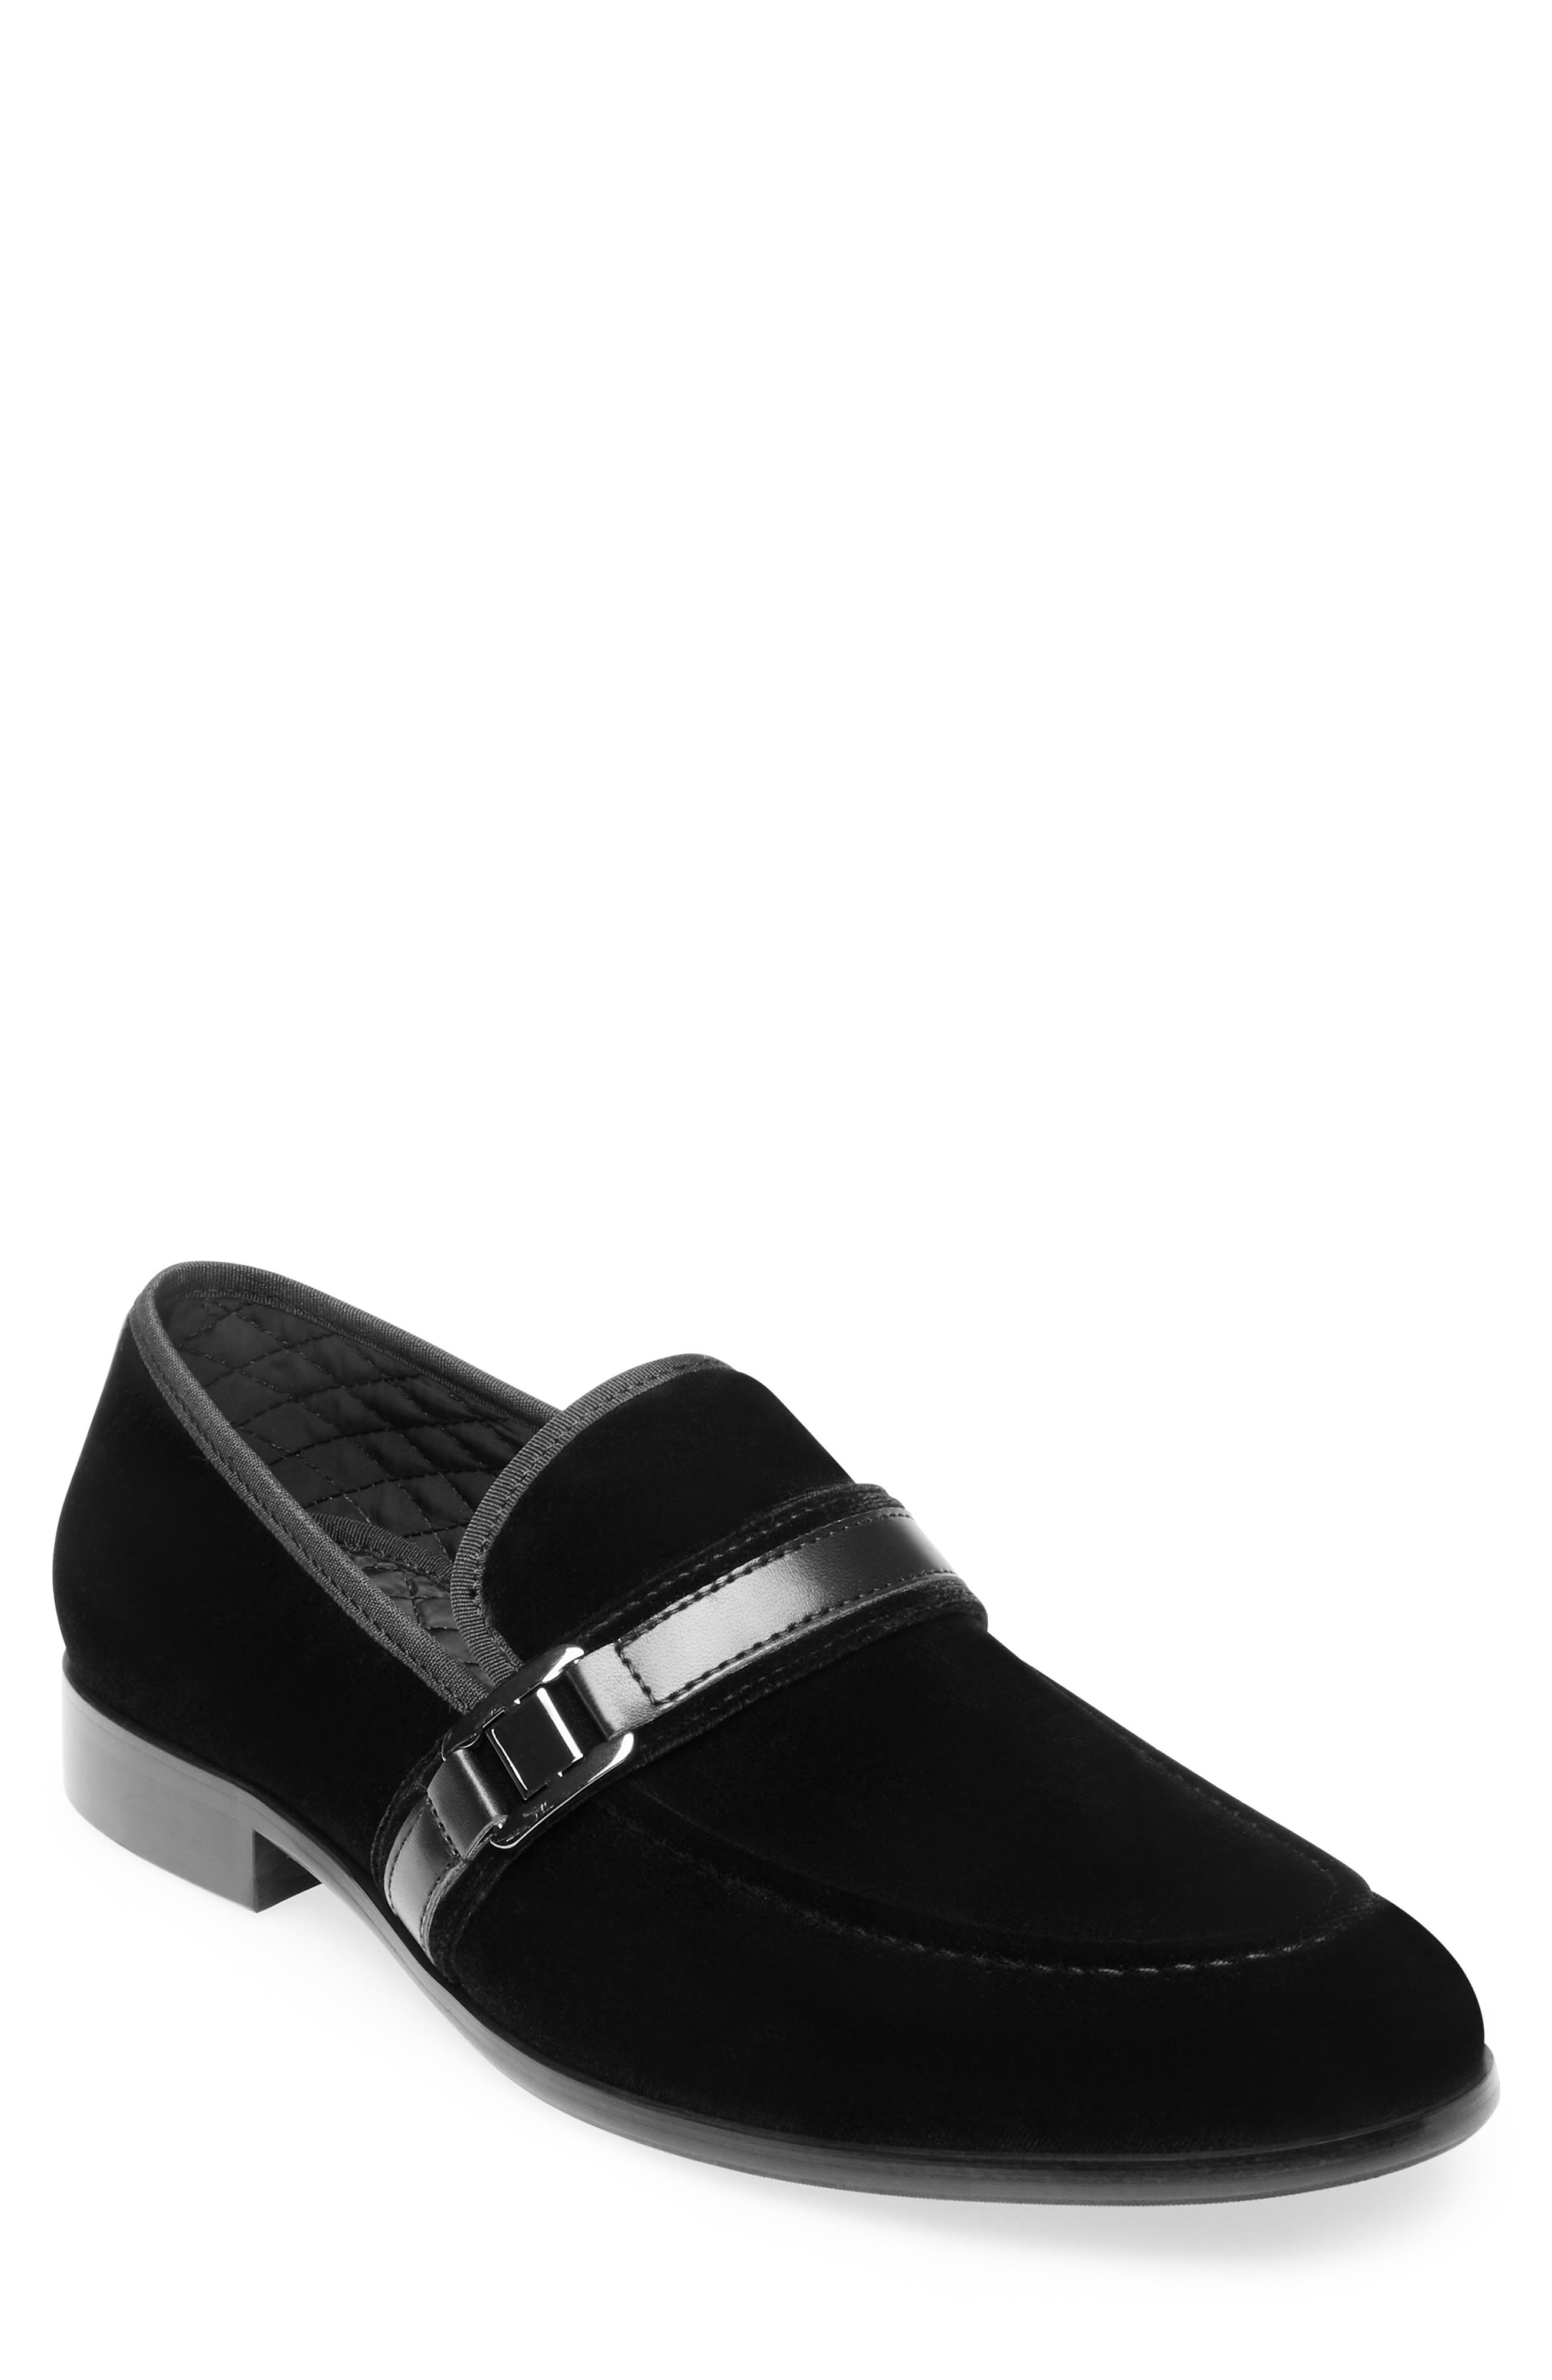 Macklin Bit Loafer,                             Main thumbnail 1, color,                             BLACK FABRIC